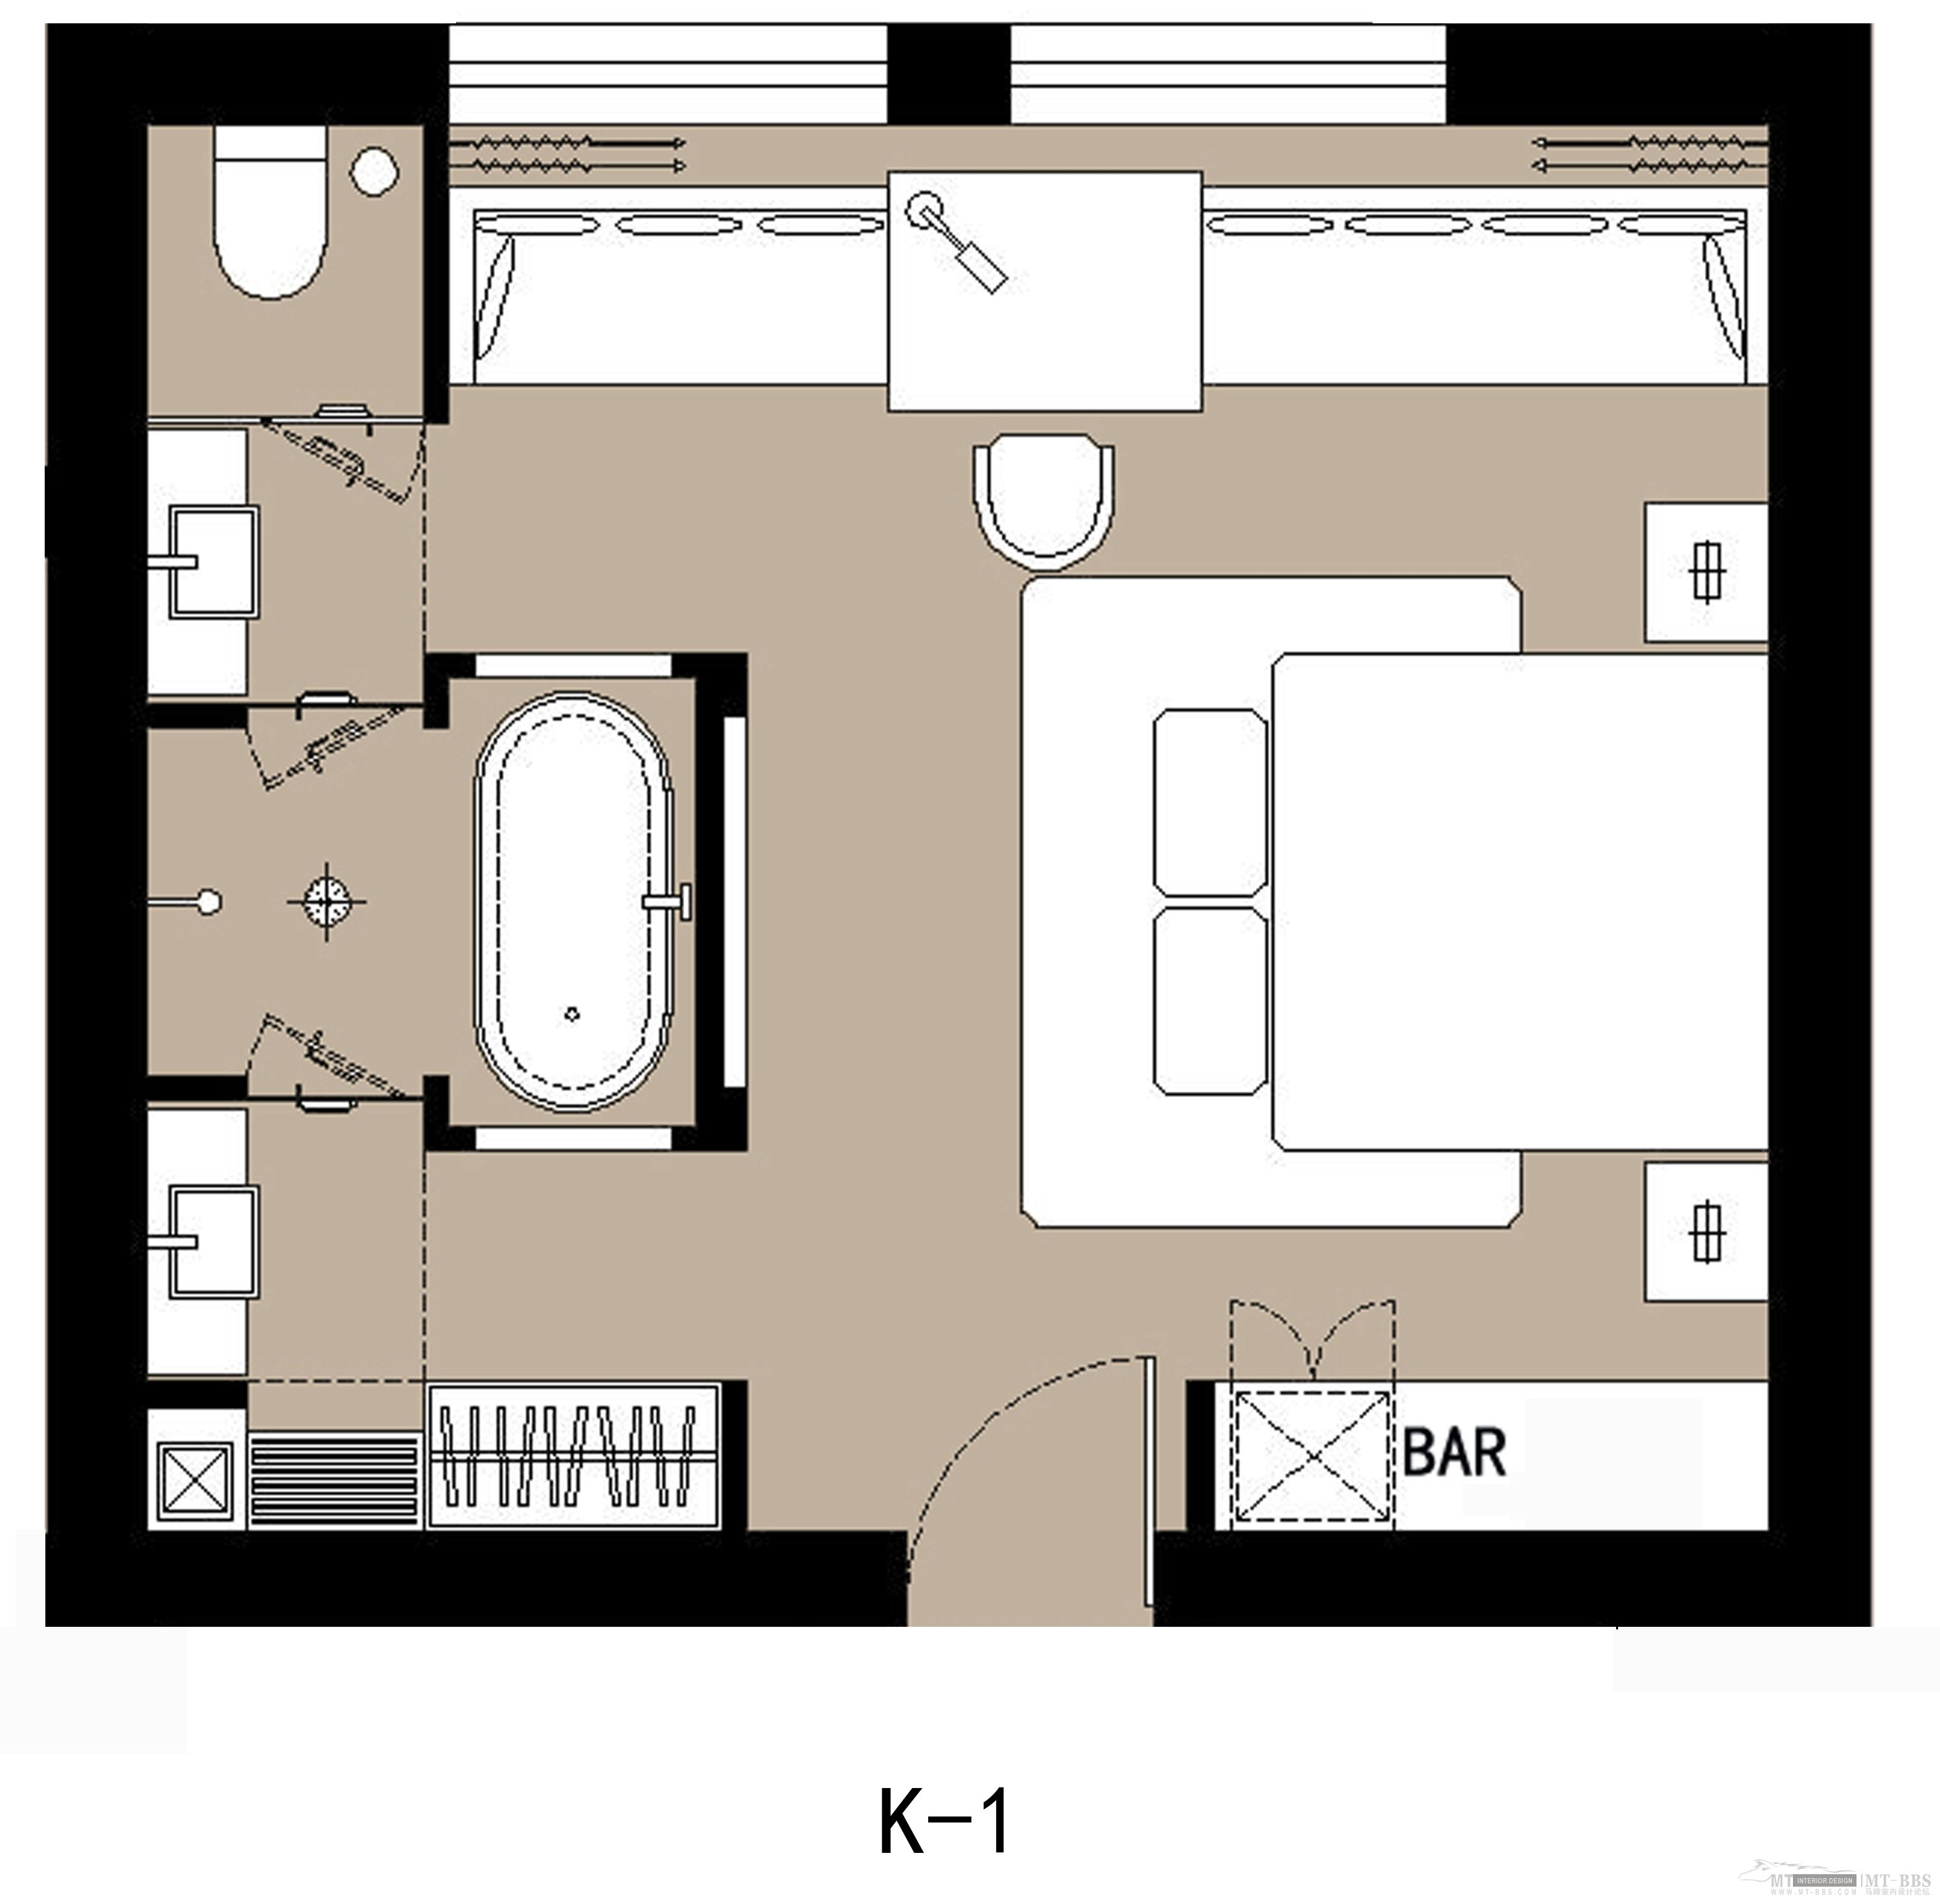 Typical Hotel Room Floor Plan Click Here For The Resort